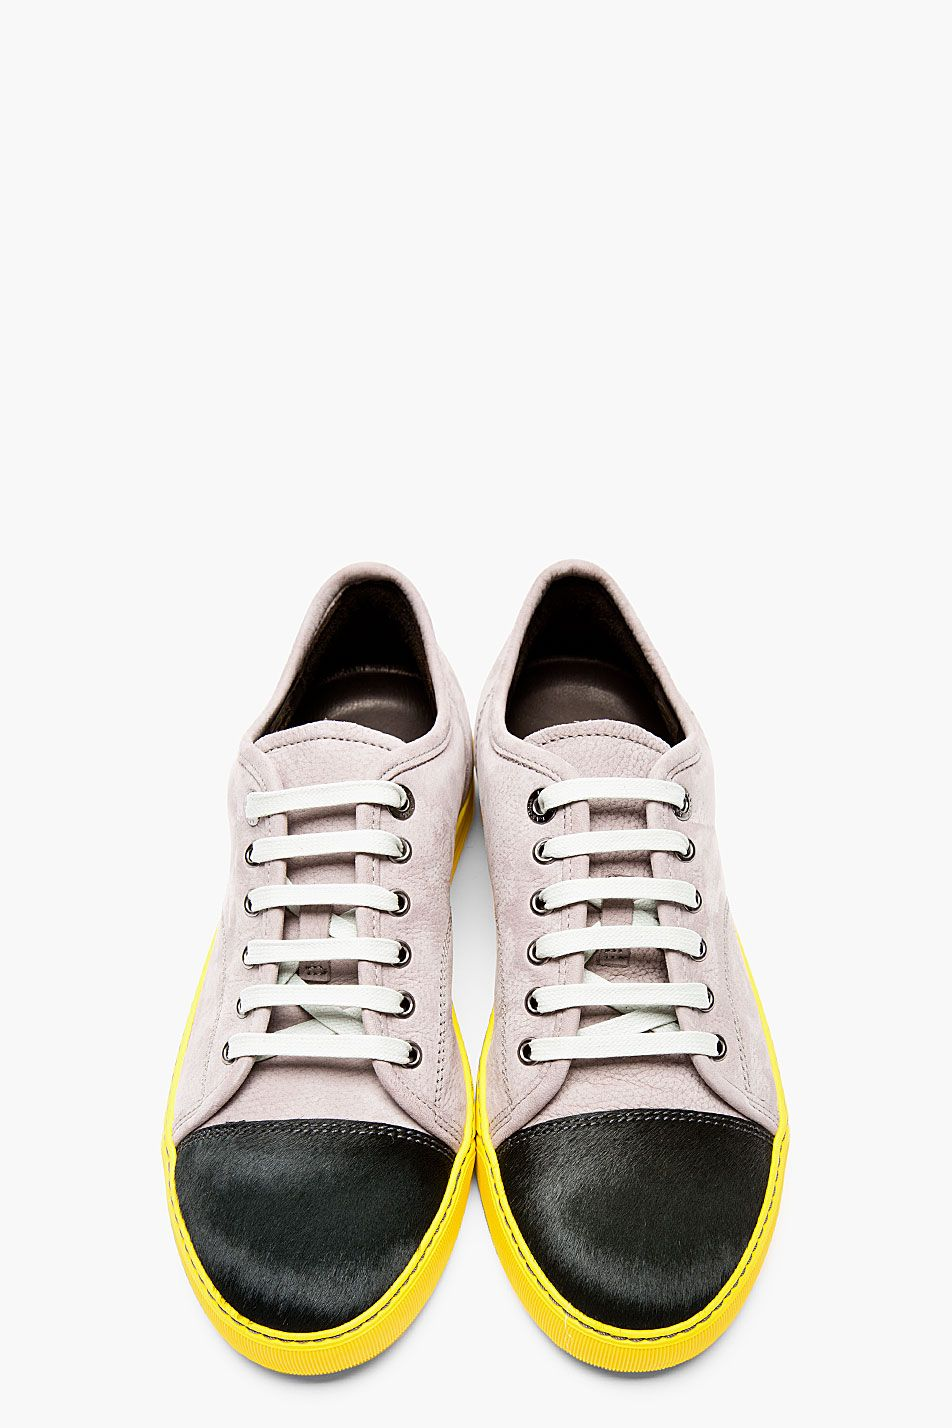 LANVIN Grey leather \u0026 calf,hair Tennis sneakers, Men\u0027s Spring Summer